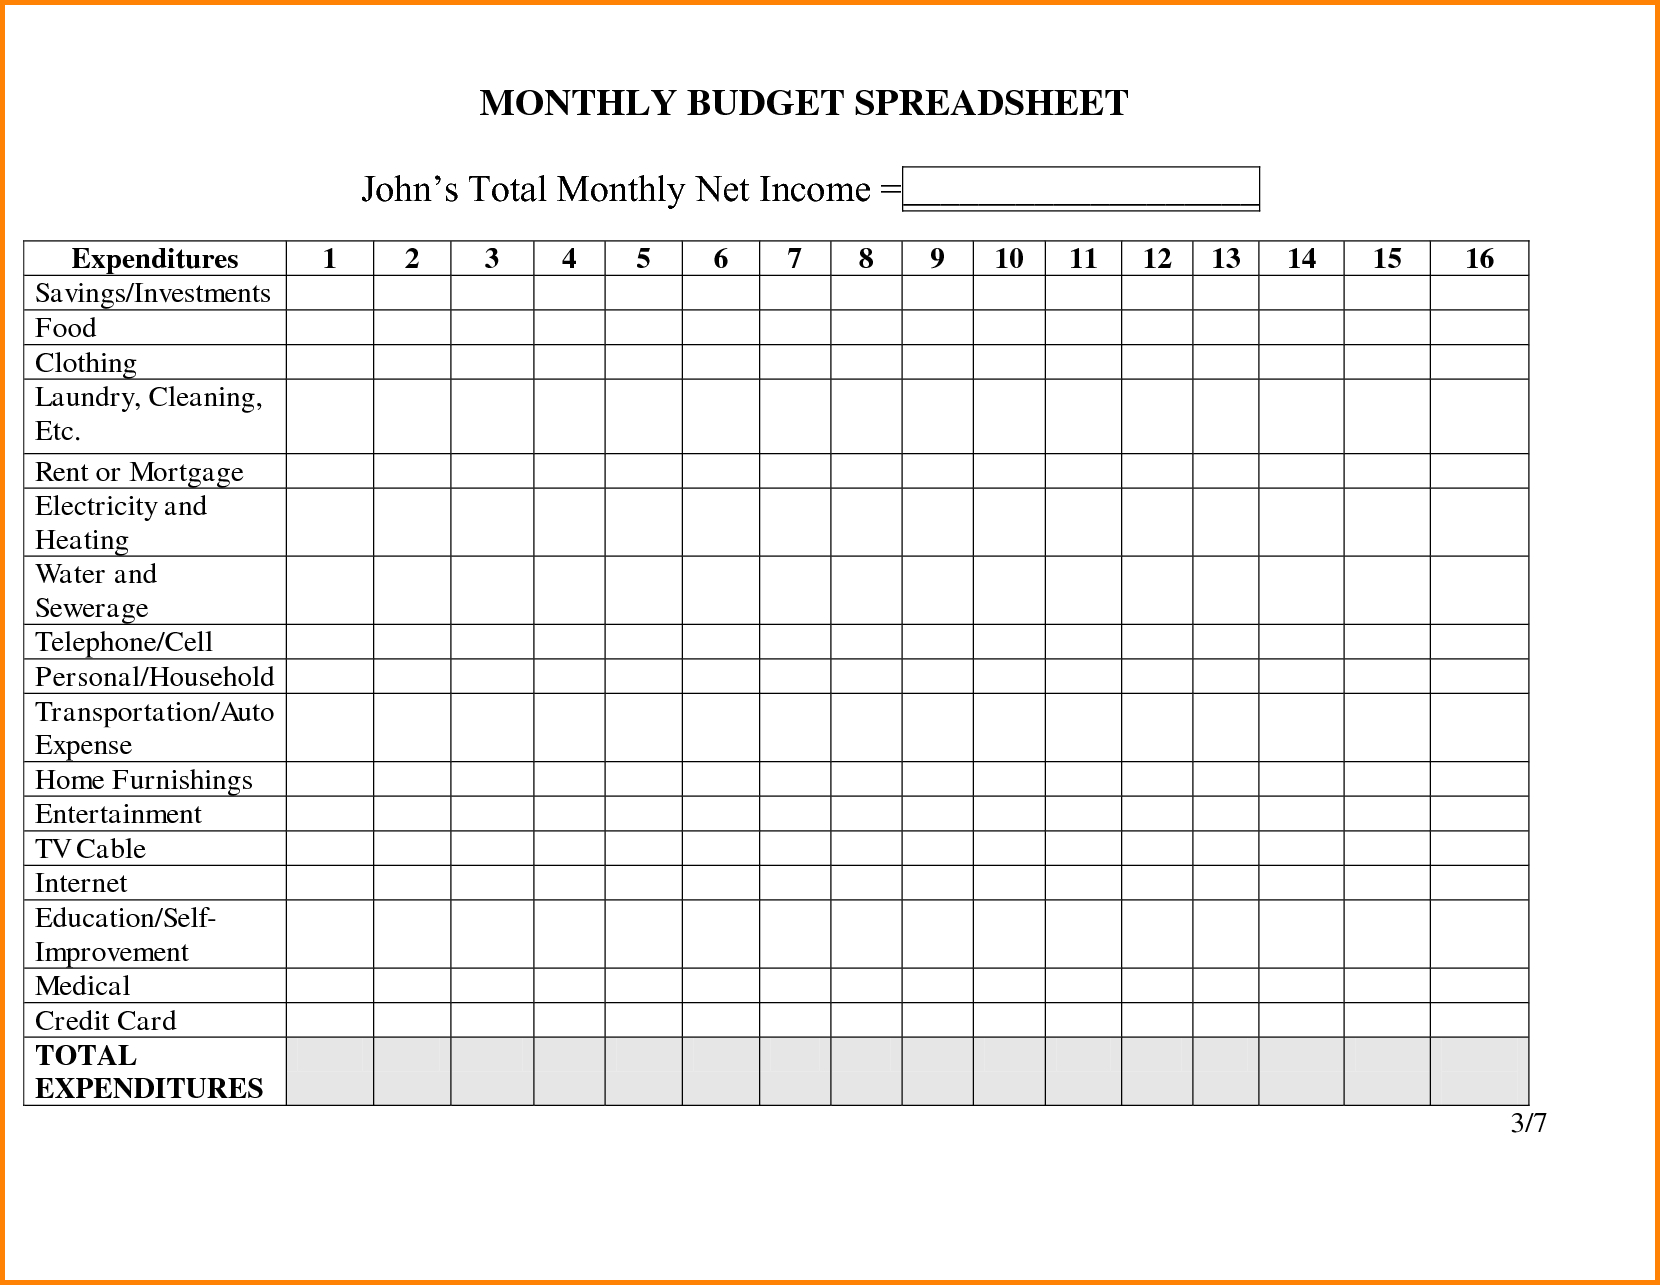 Personal Monthly Budget Spreadsheet Family Template Free Worksheet - Free Printable Monthly Expenses Worksheet